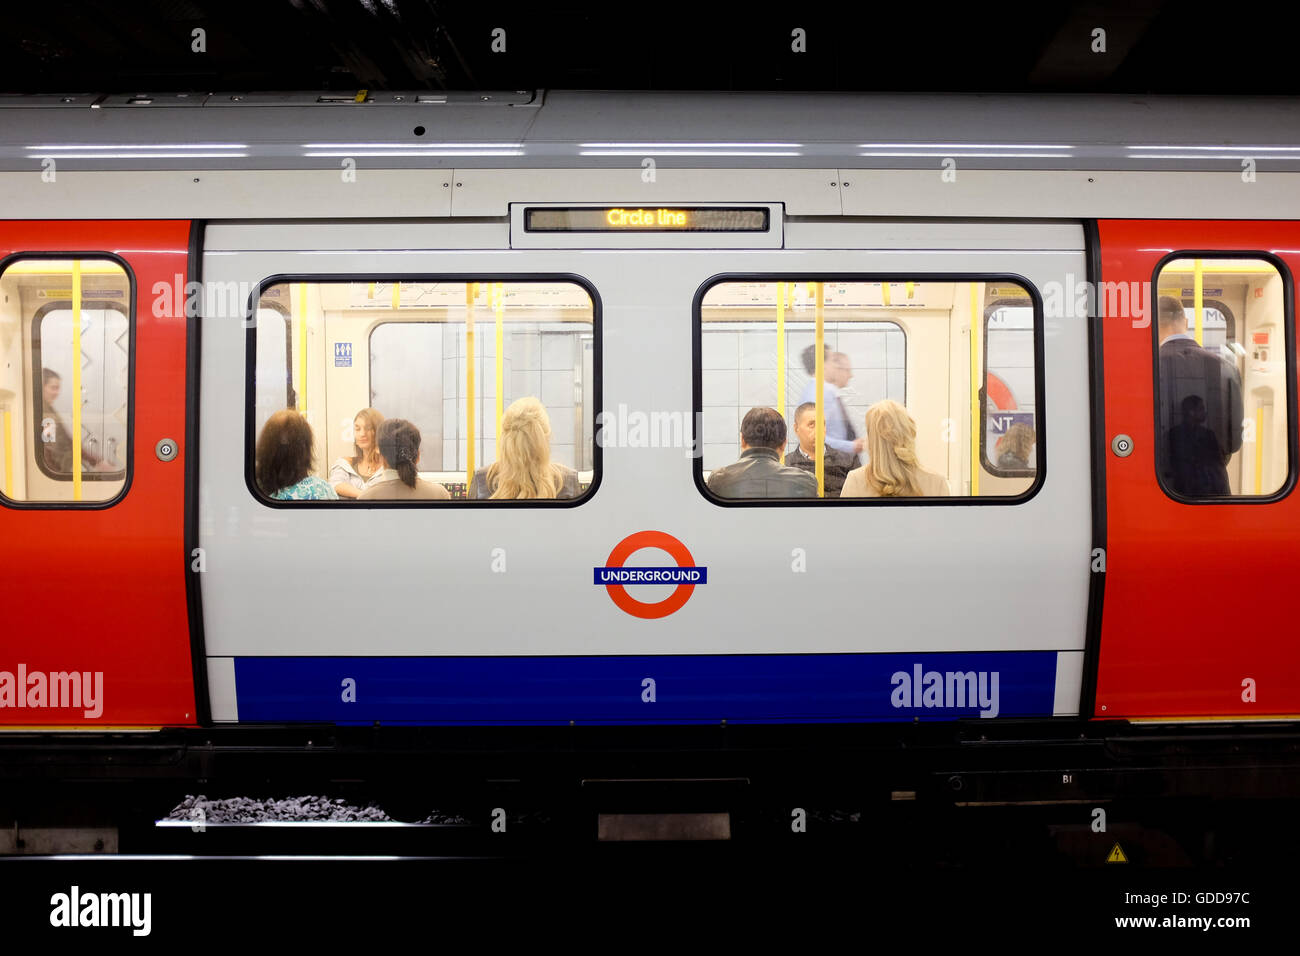 A train on the the London Underground network. - Stock Image